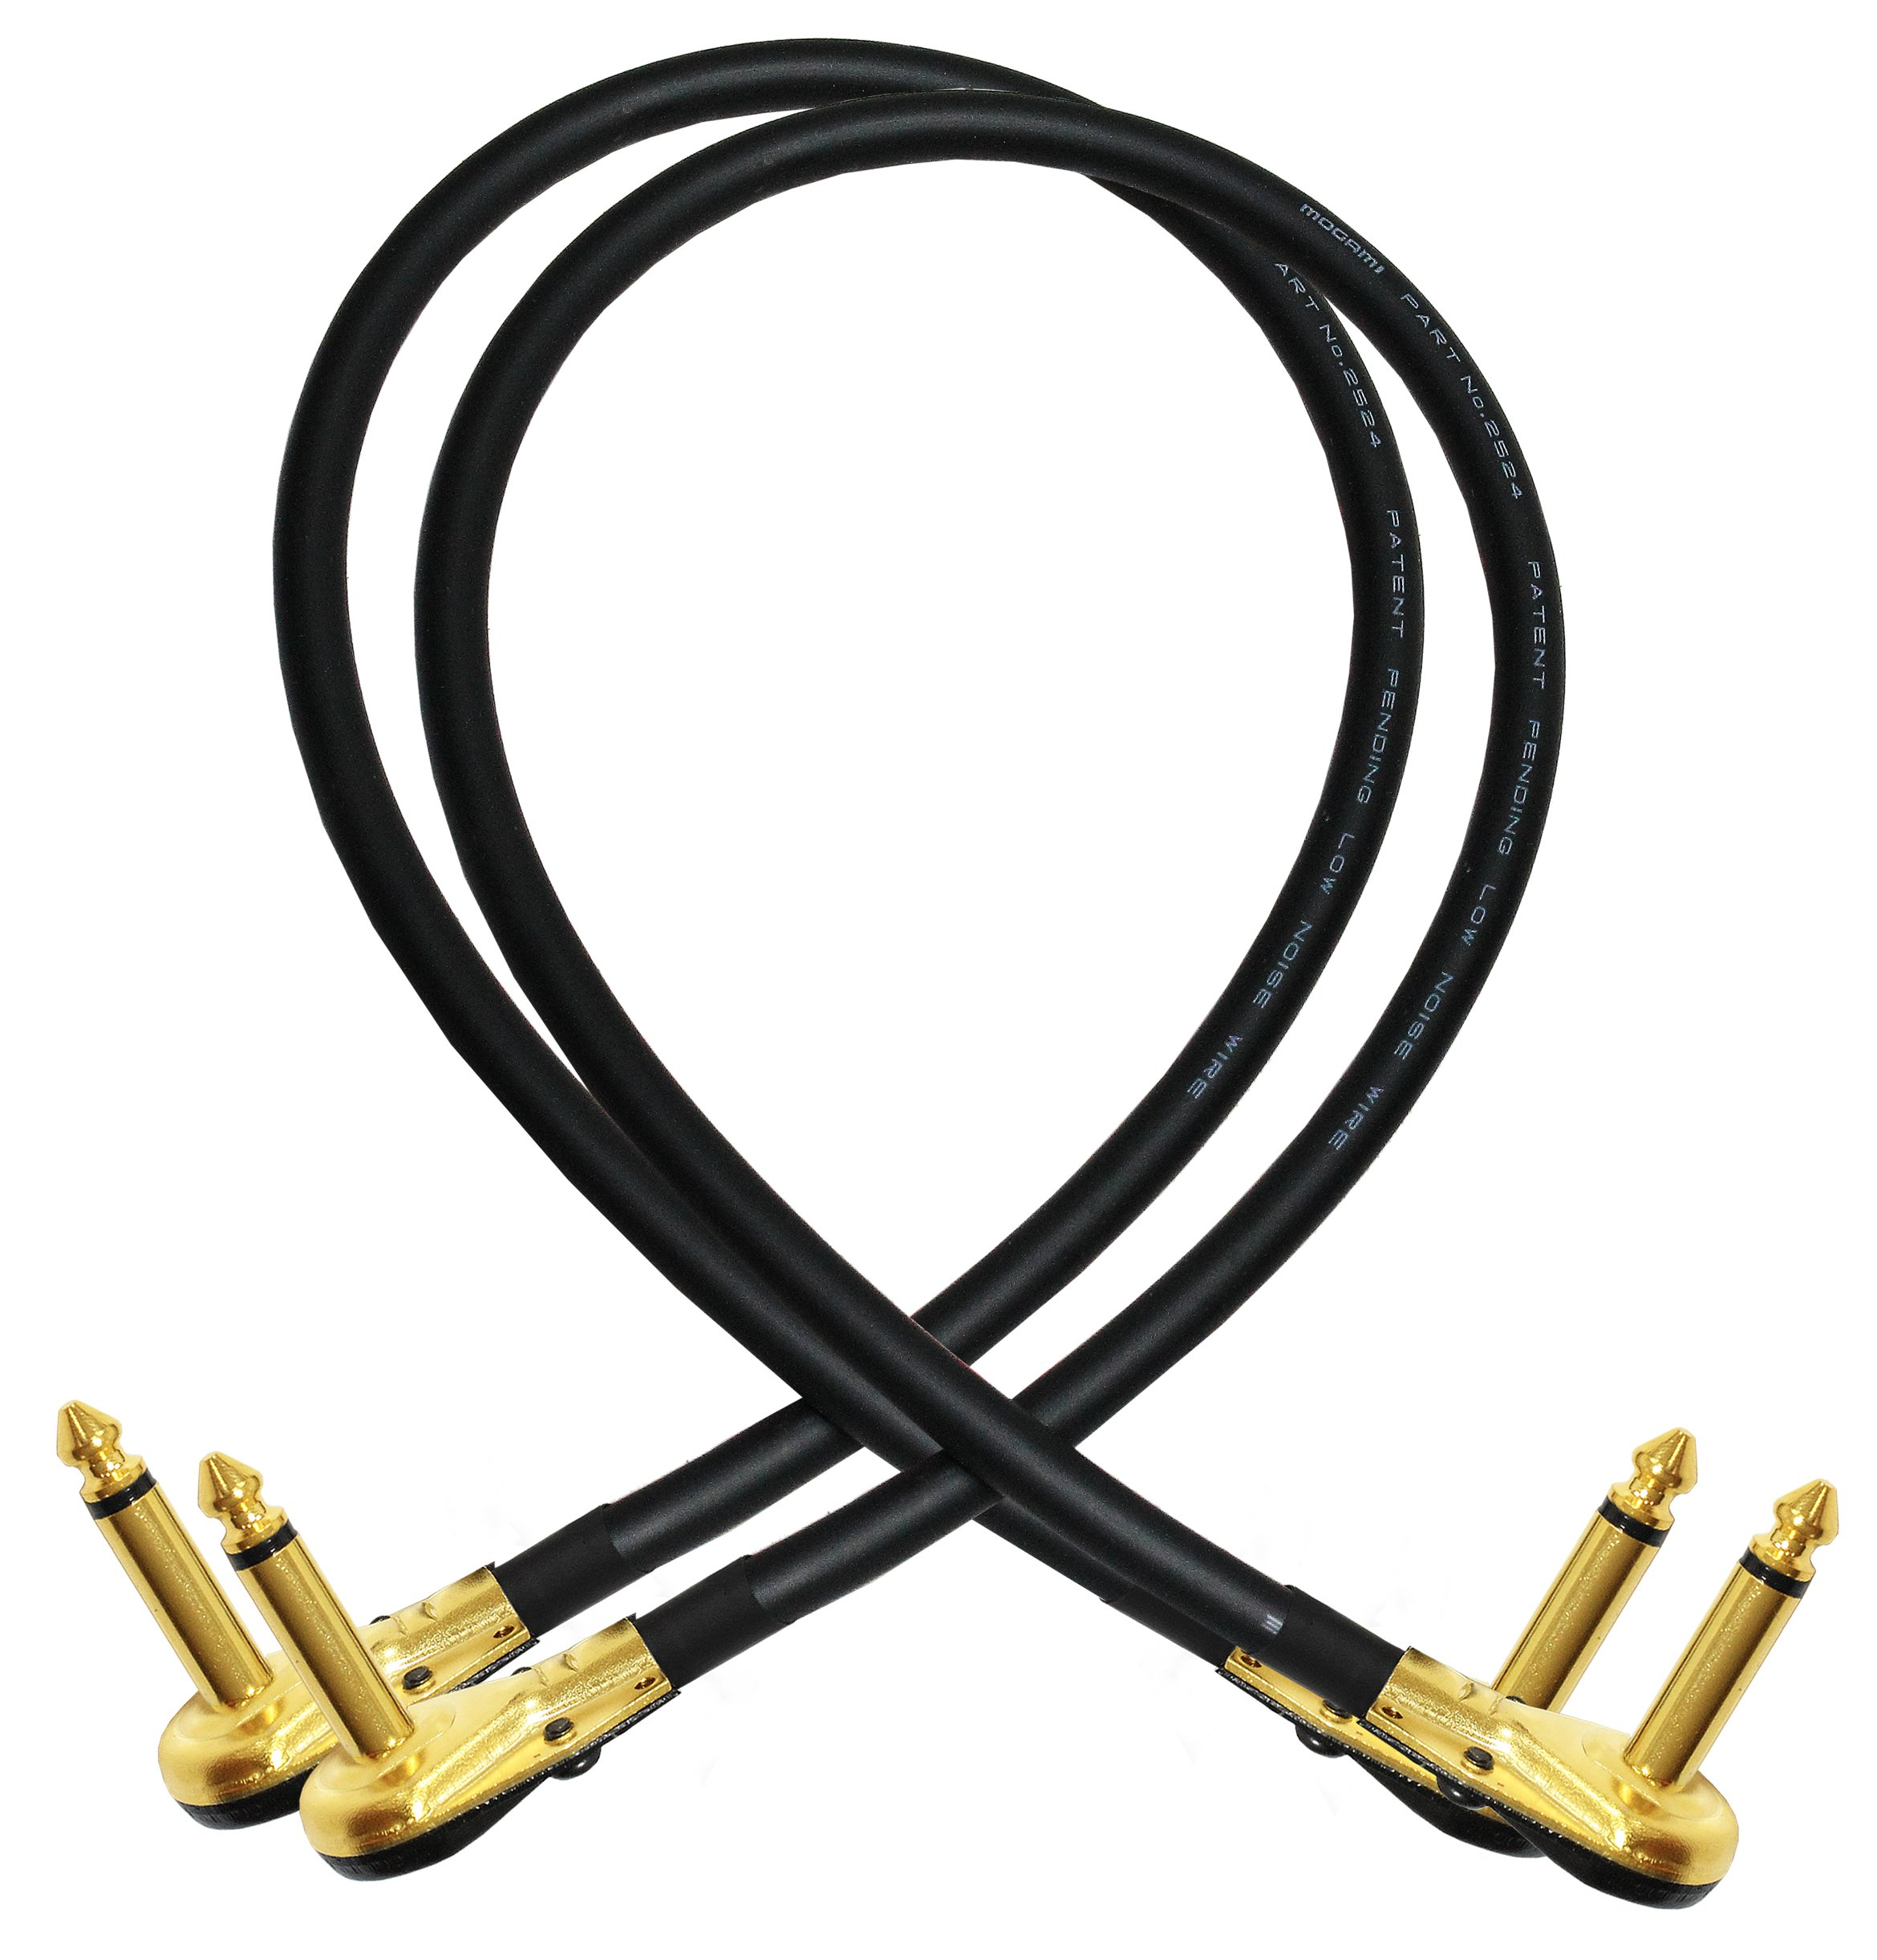 2 Units - 18 Inch - Pedal, Effects, Patch, instrument cable CUSTOM MADE By WORLDS BEST CABLES - made using Mogami 2524 wire and Eminence Gold Plated ¼ inch (6.35mm) R/A Pancake type Connectors